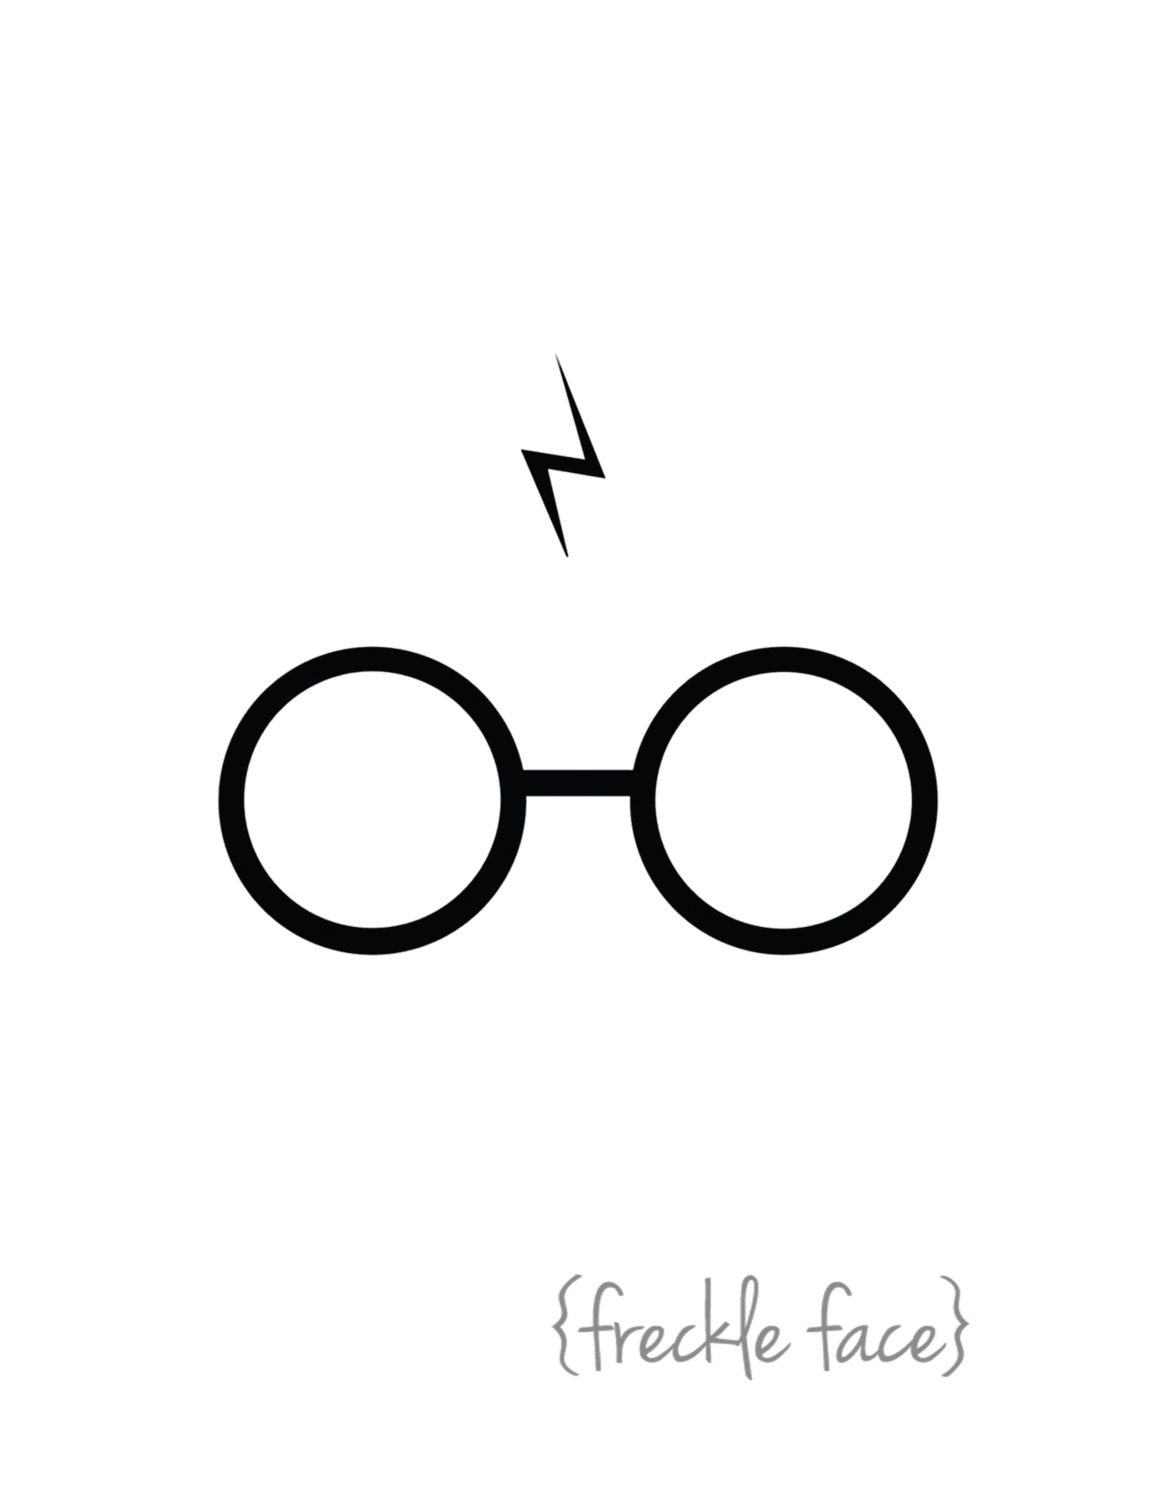 Remarkable image intended for harry potter glasses printable